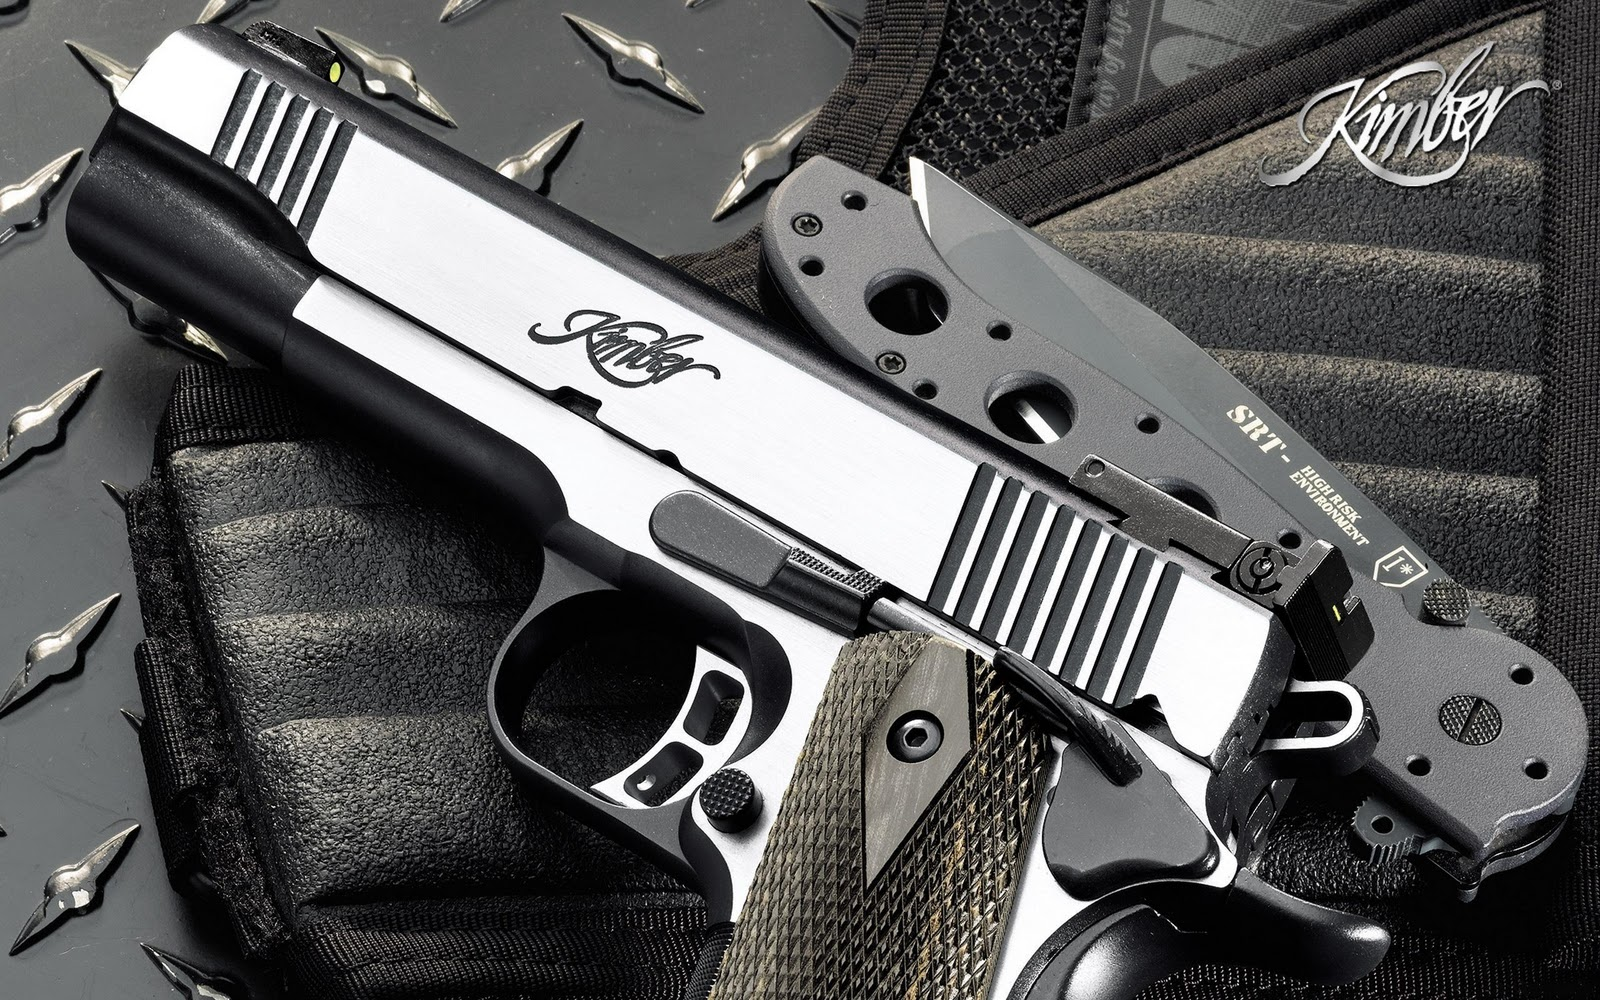 48] Kimber Firearms Wallpaper on WallpaperSafari 1600x1000